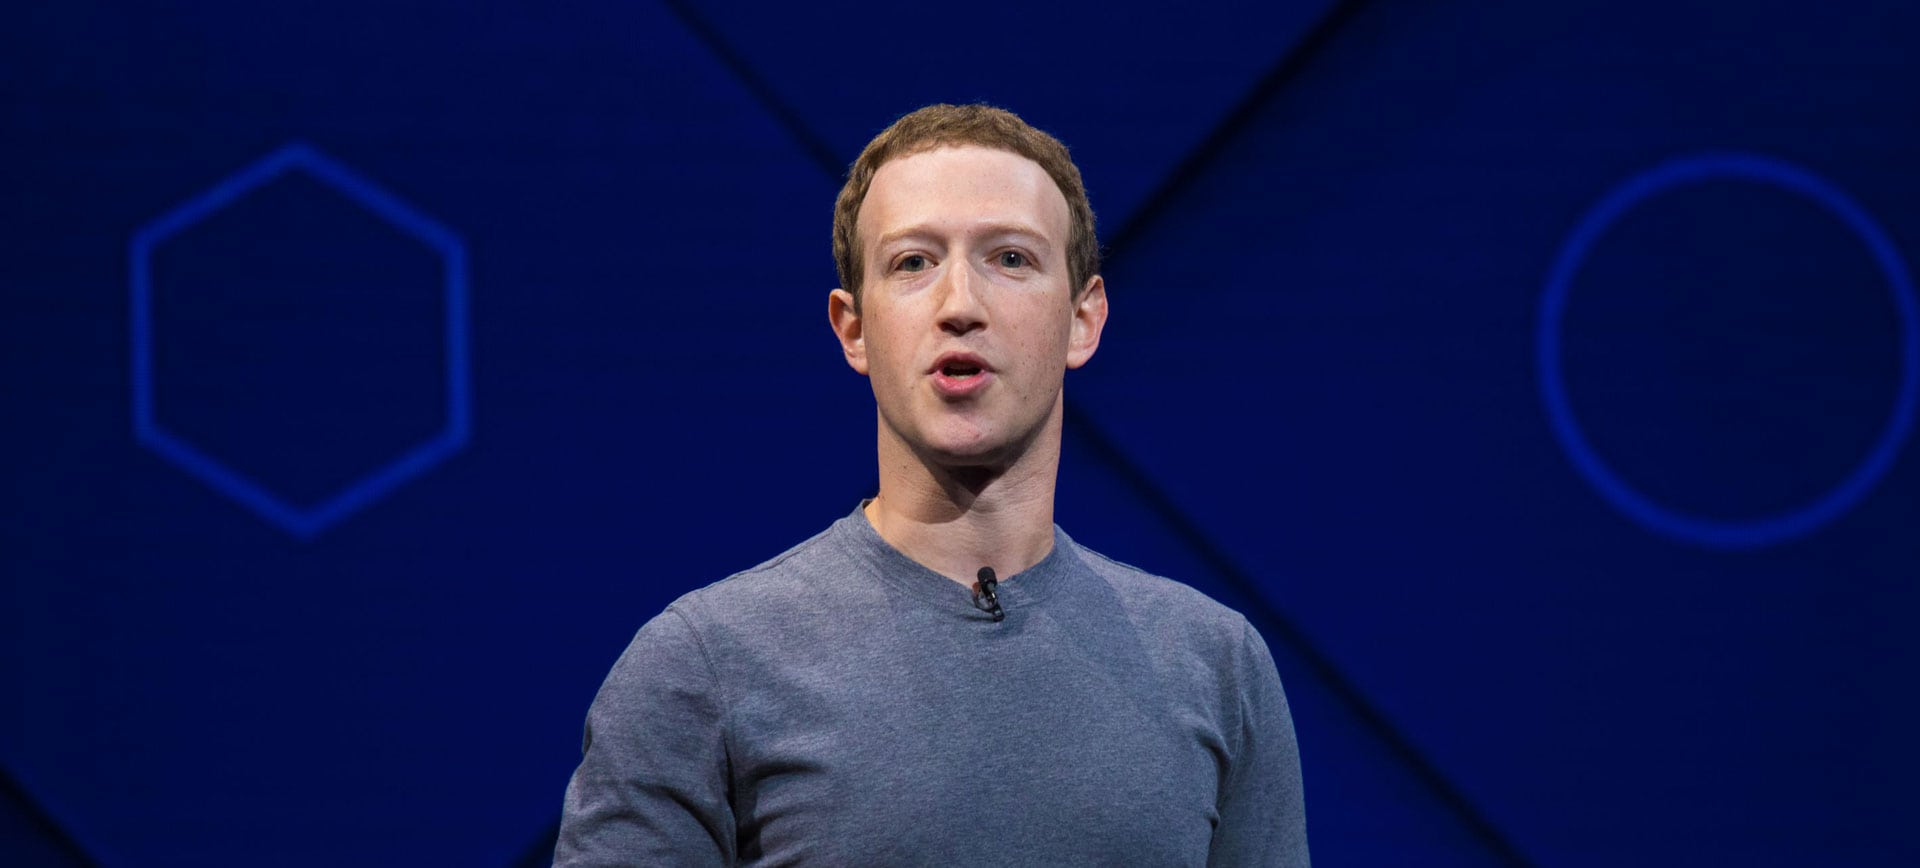 What I Learned From Mark Zuckerberg